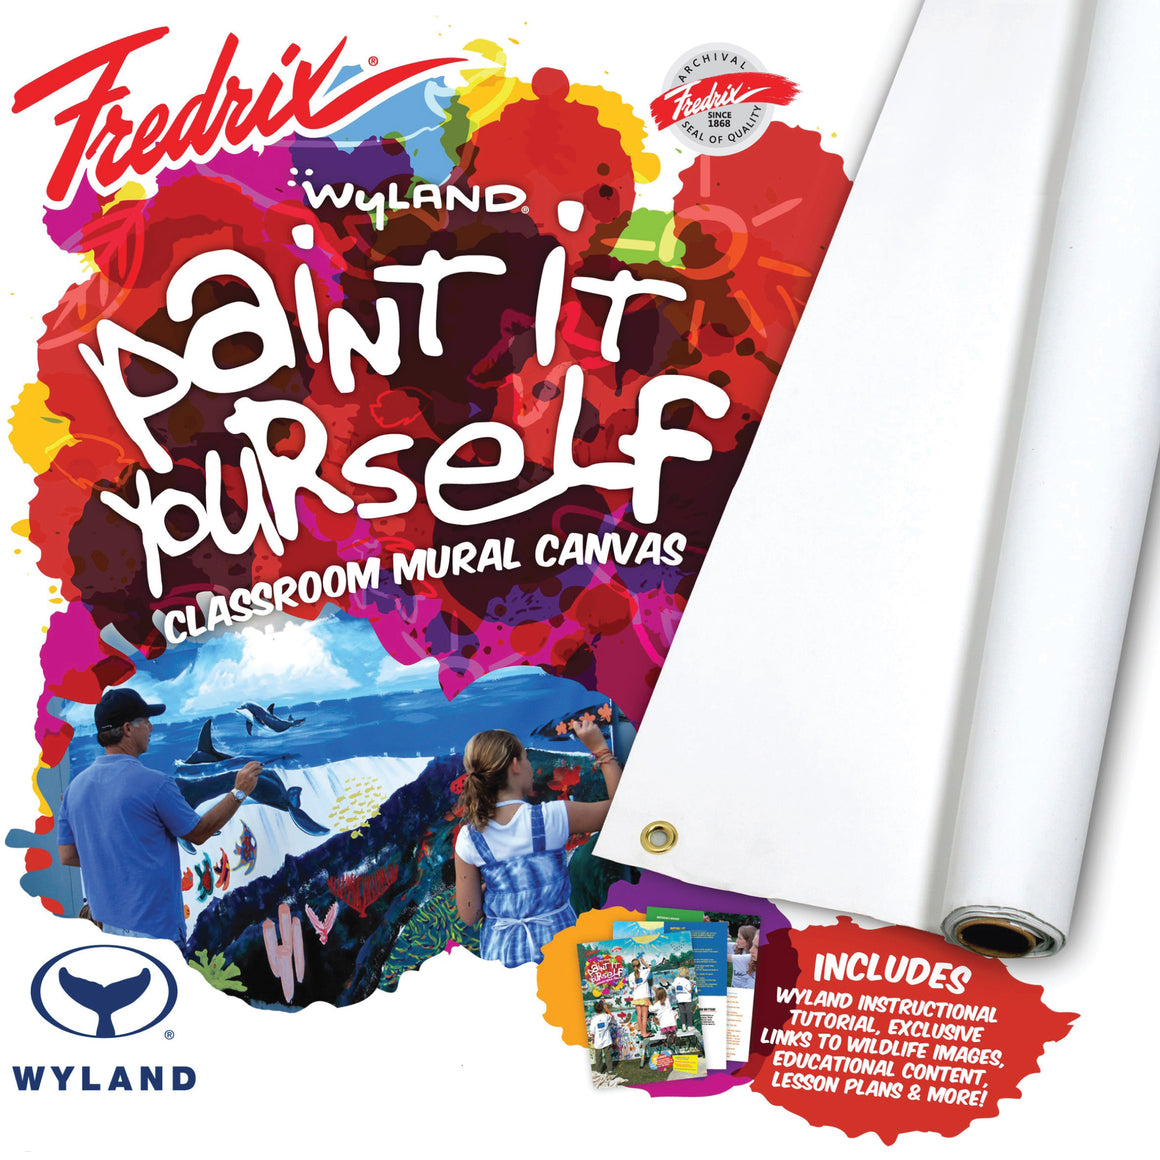 Wyland Classroom Mural/Banner Canvas is a new product developed by nature artist Wyland® and Fredrix® Artist Canvas that uses art to teach young people about our forests and oceans, and their importance to the world as irreplaceable resources.